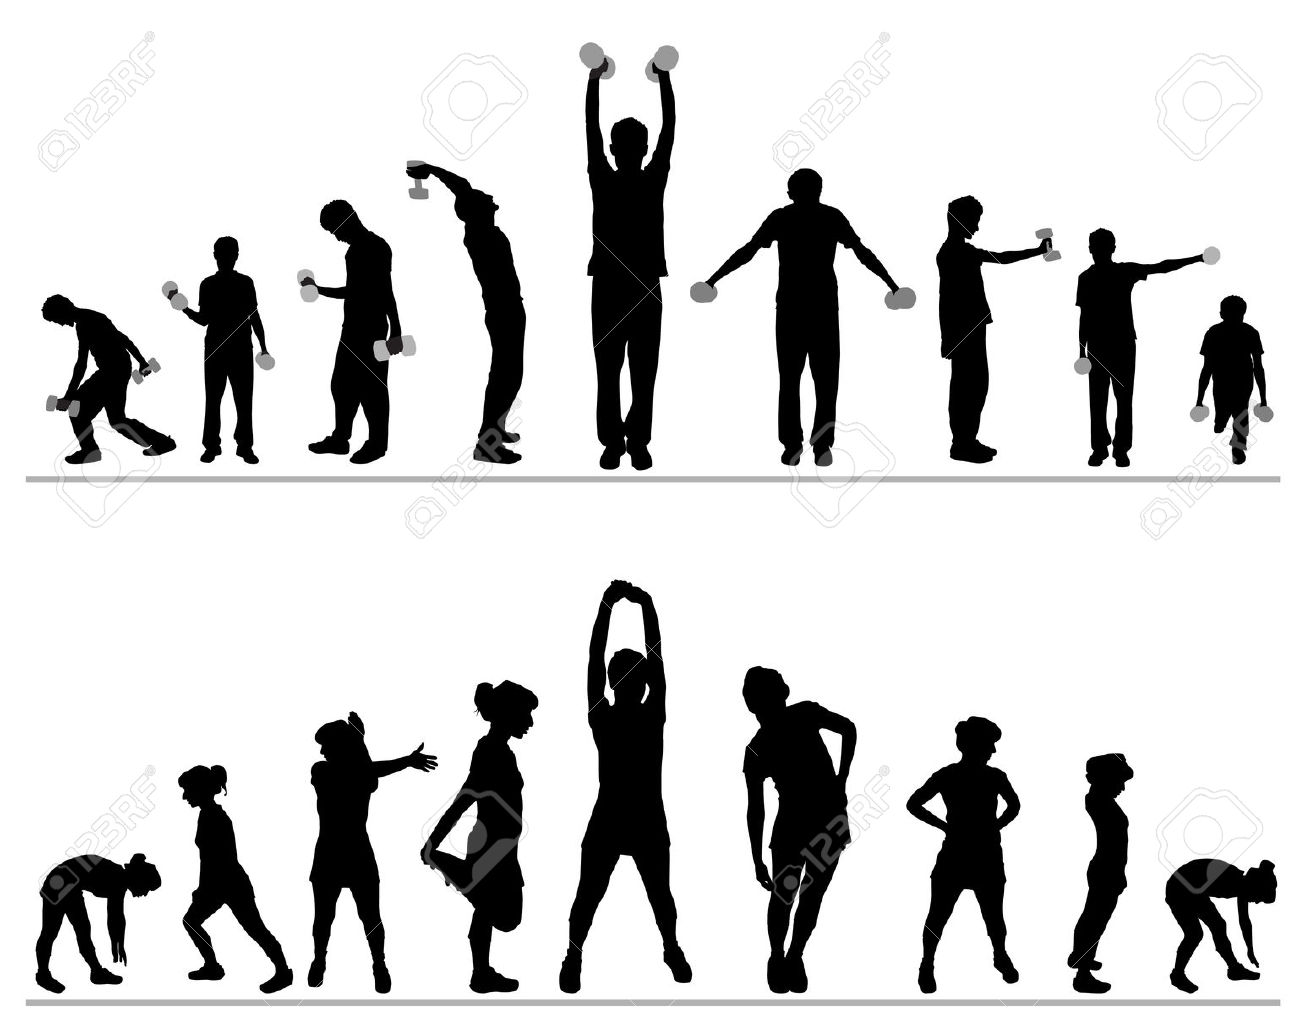 Exercise clipart borders. Fitness